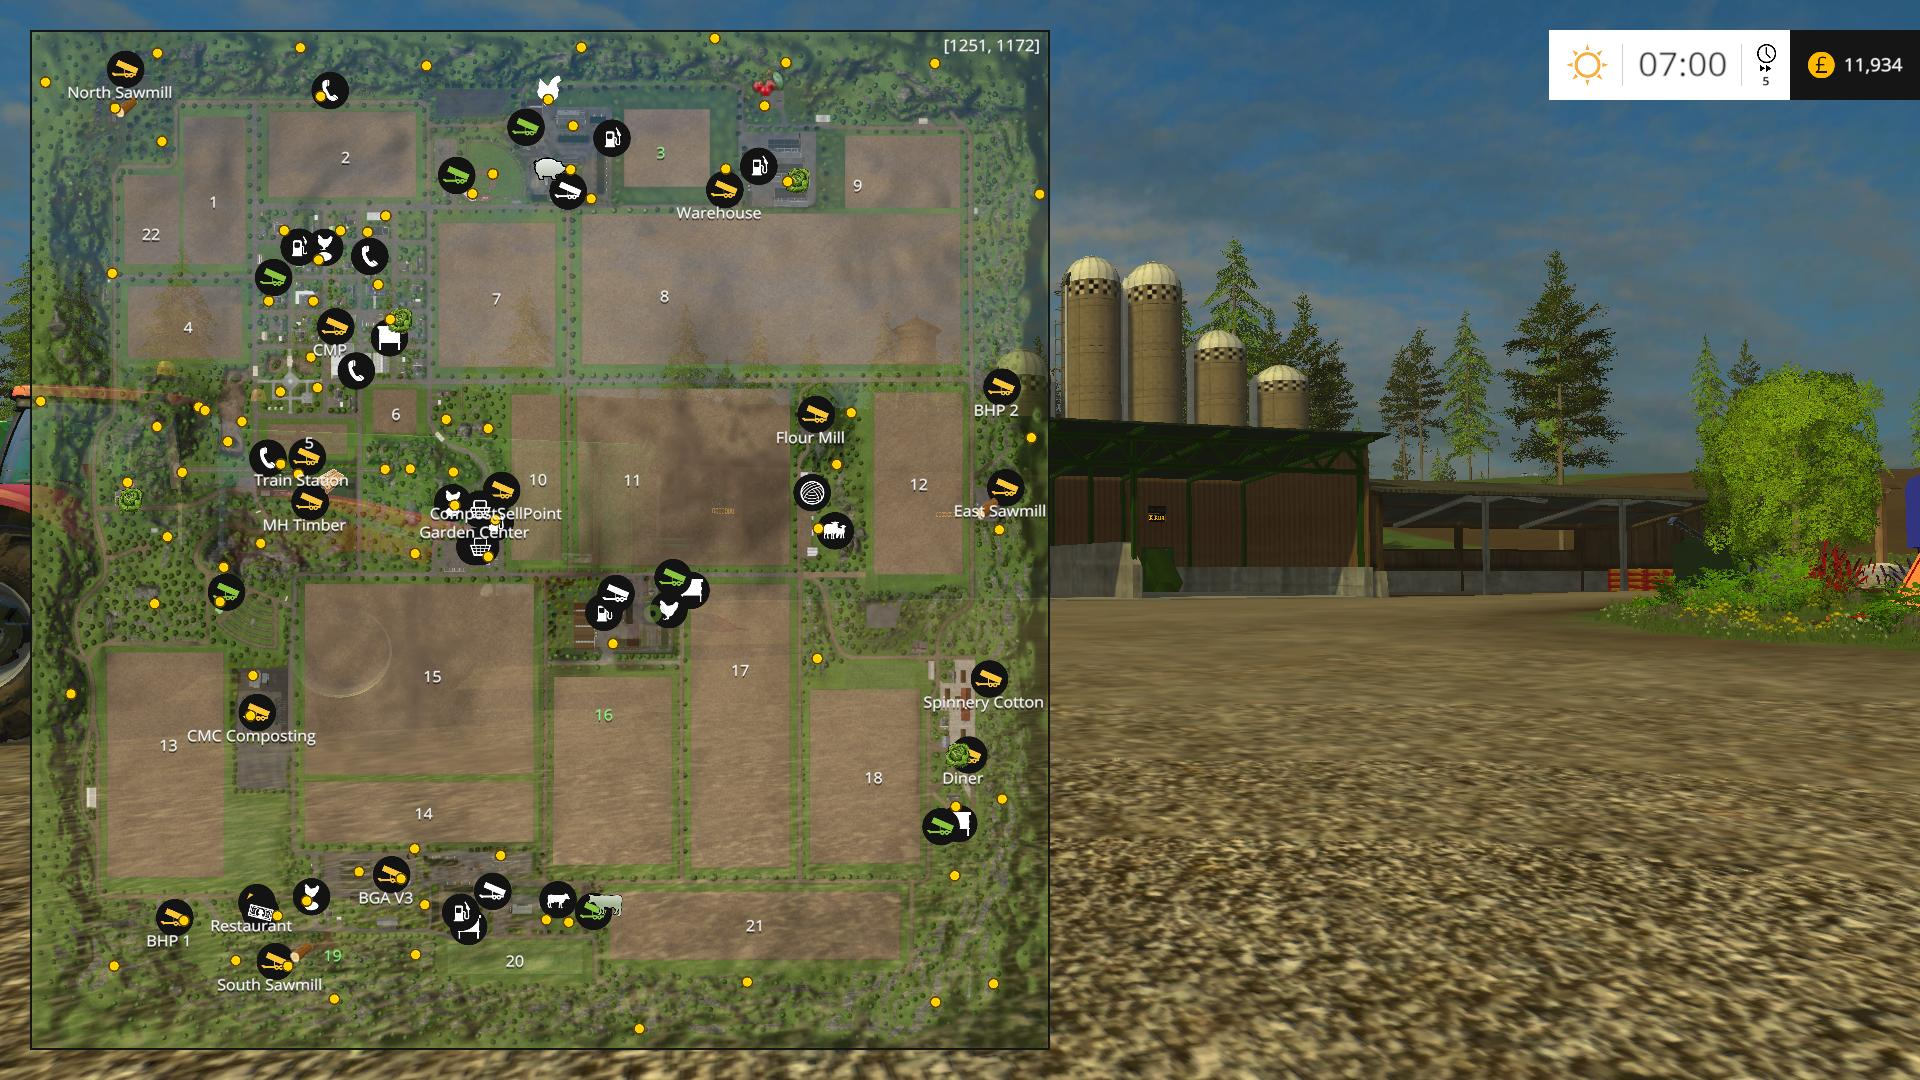 Fs 15 gold coin mod xbox : Securecoin mining pool timetable